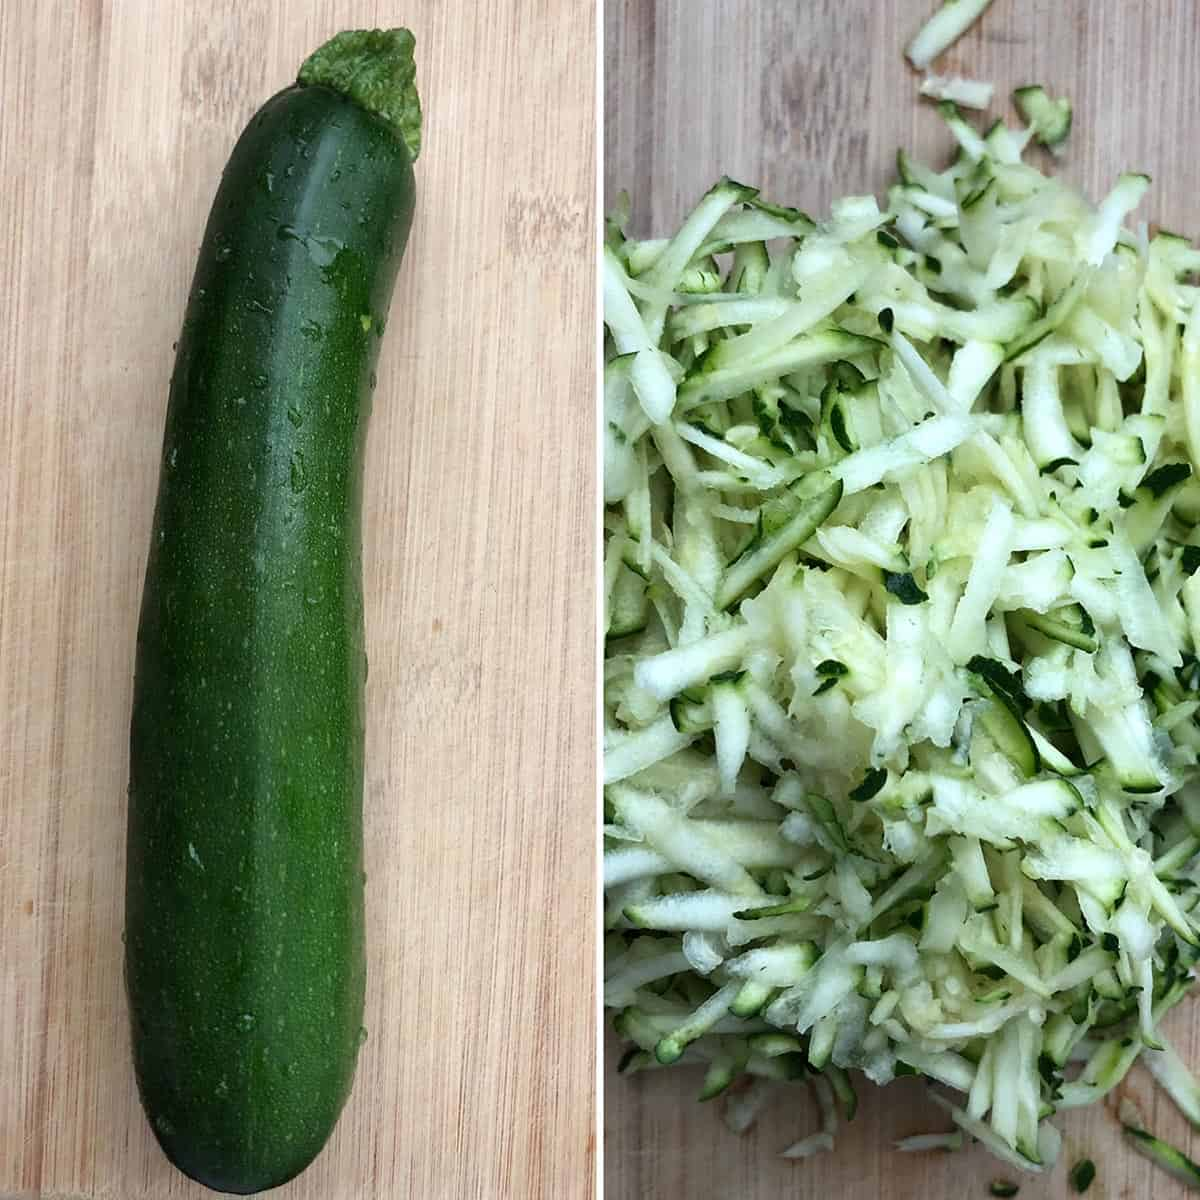 side by side photos of whole zucchini and grated zucchini